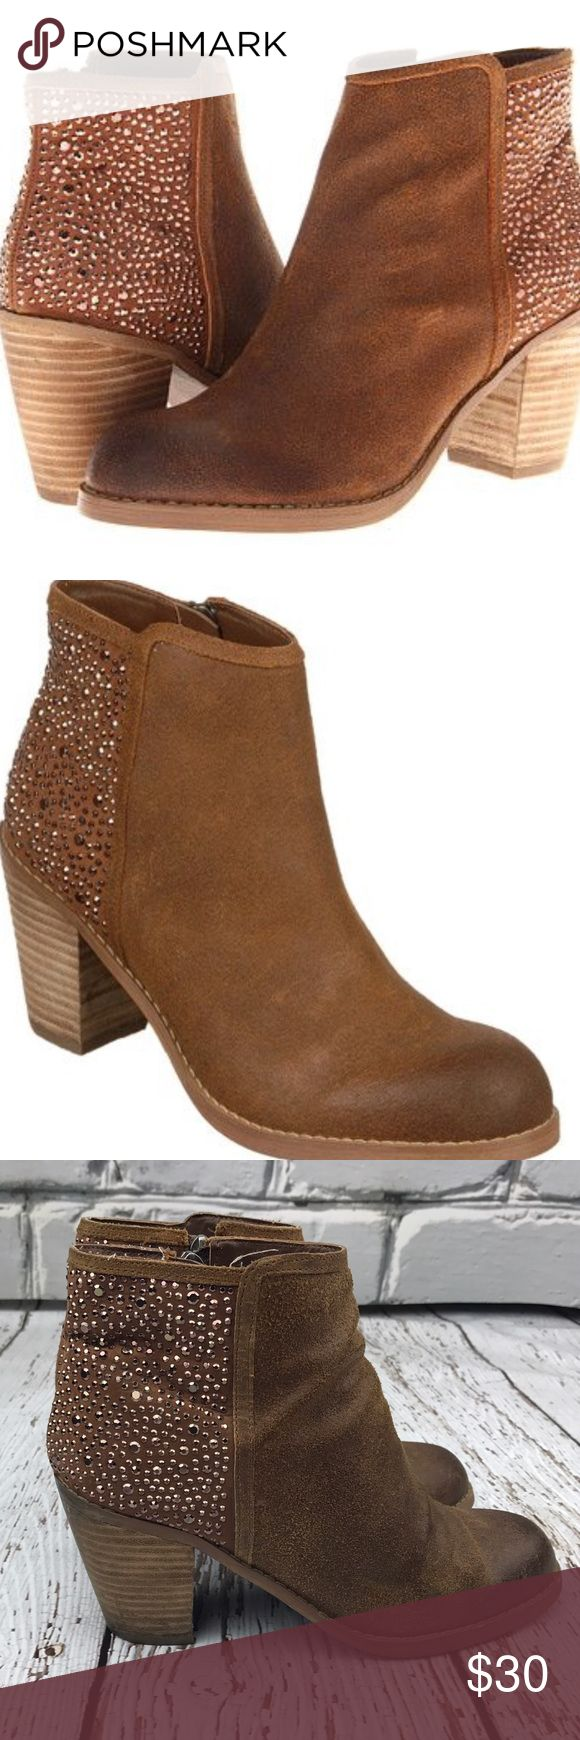 "💕SALE💕Carlos Santana Driskill Suede Stud Boot Fantastic 💕Carlos Santana Driskill Suede Studdded High Ankle Booties 3"" Heel Carlos Santana Shoes Ankle Boots & Booties"